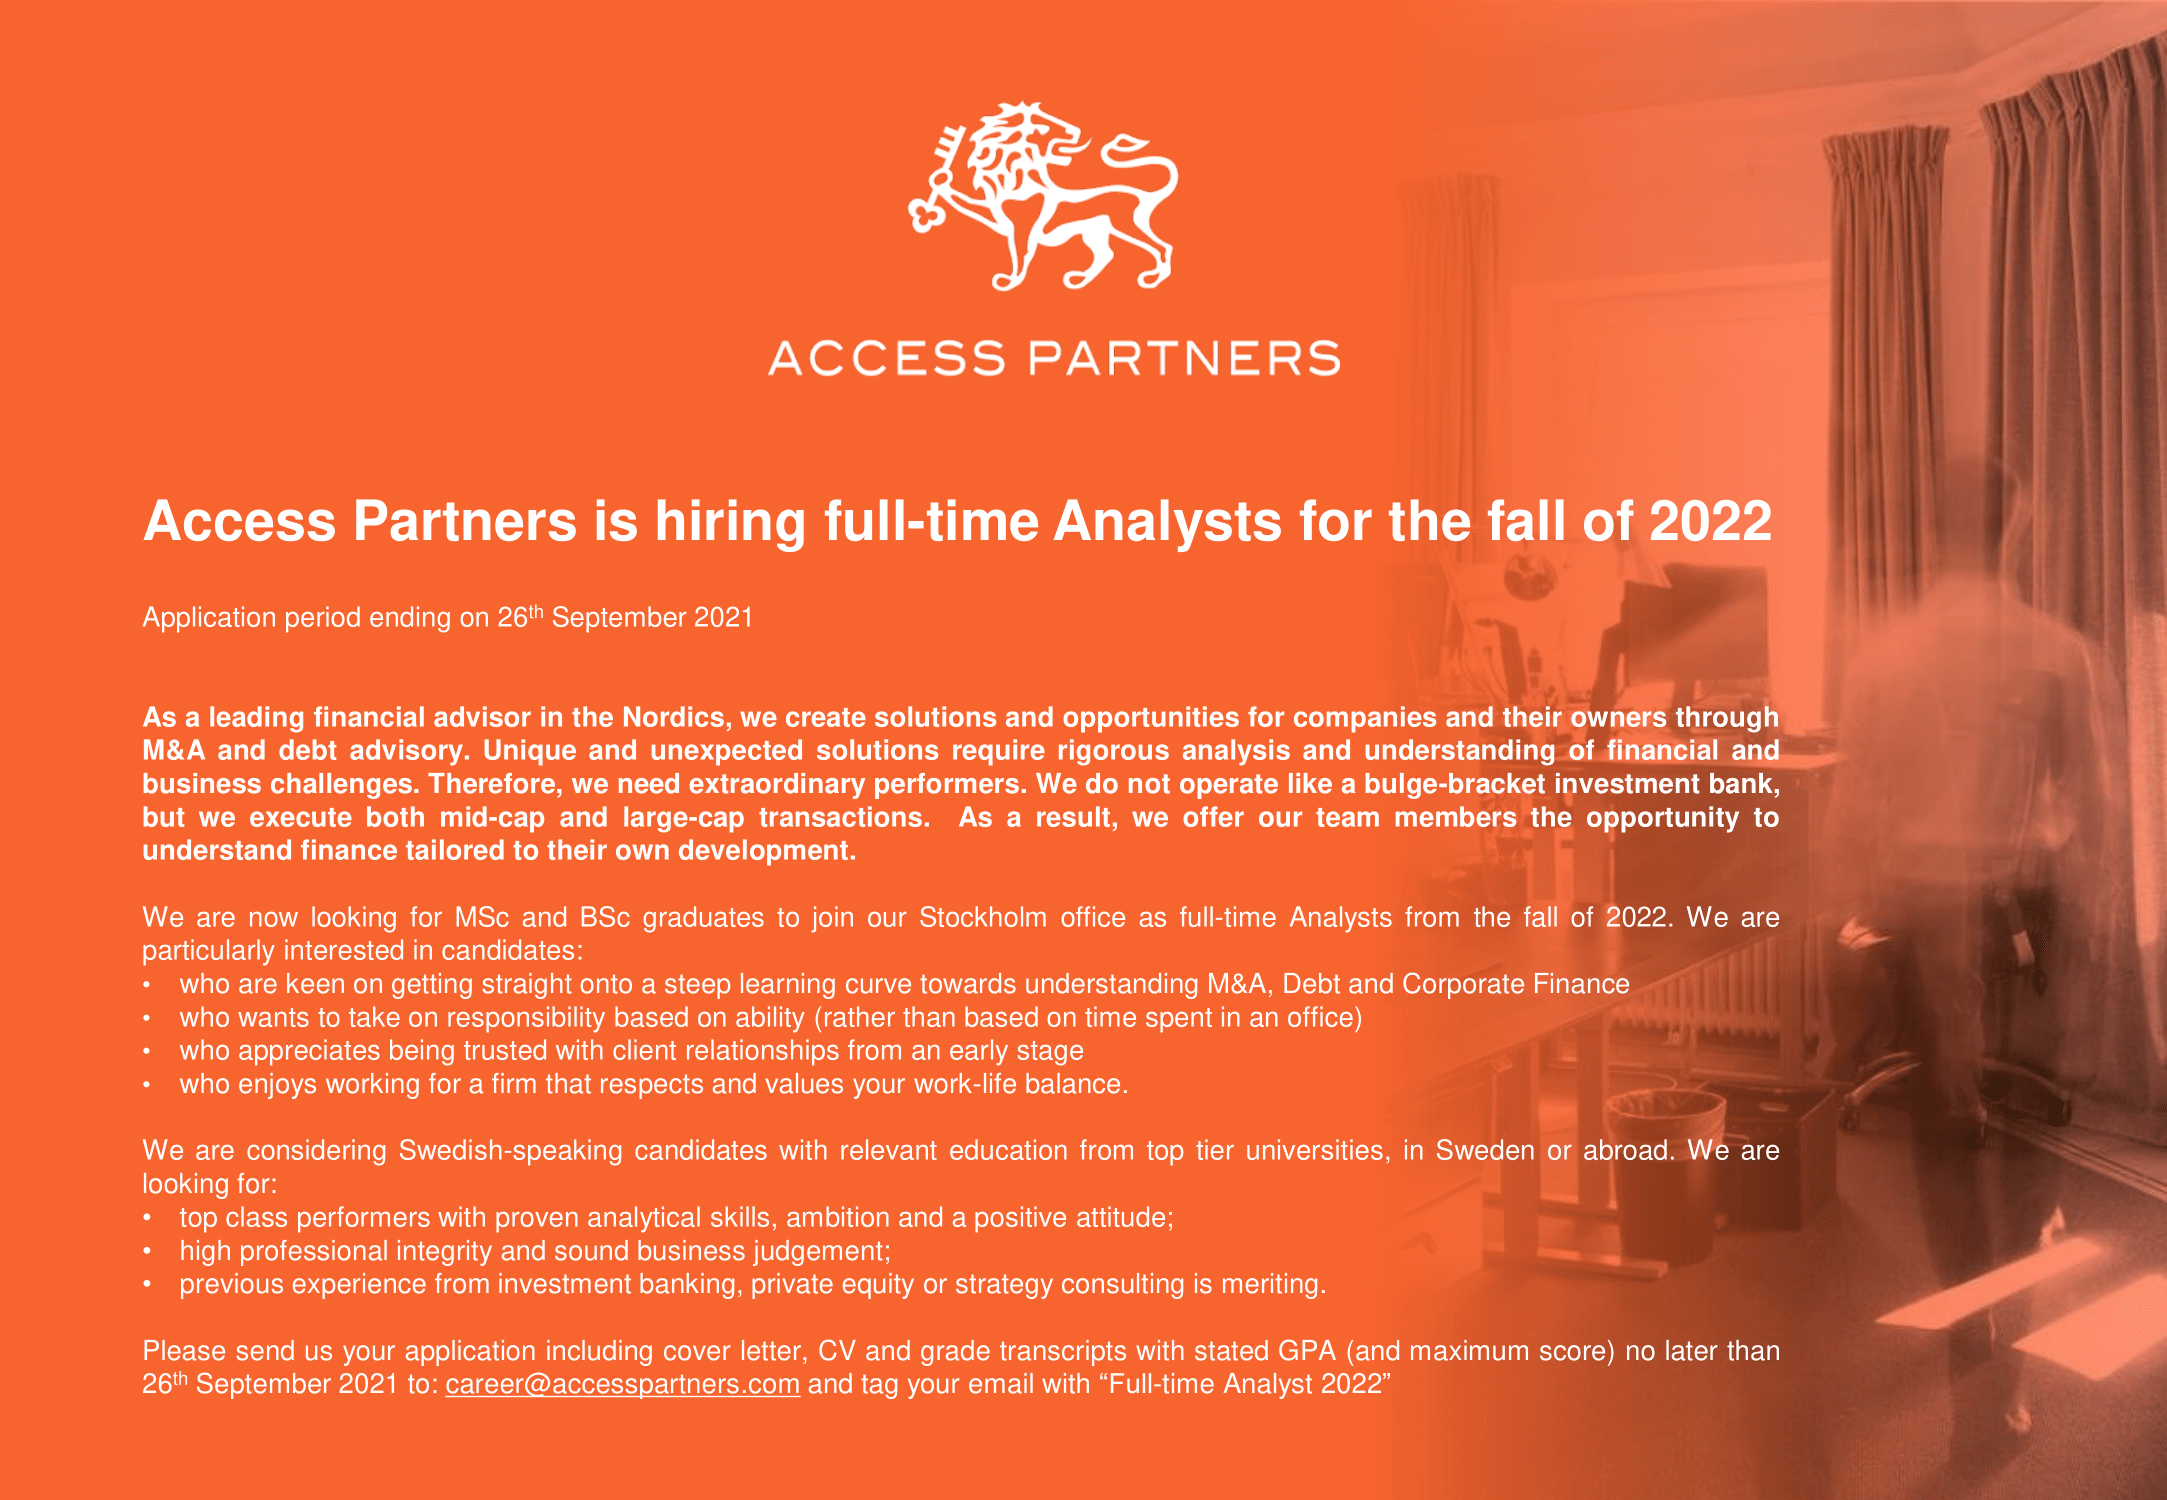 Access Partners